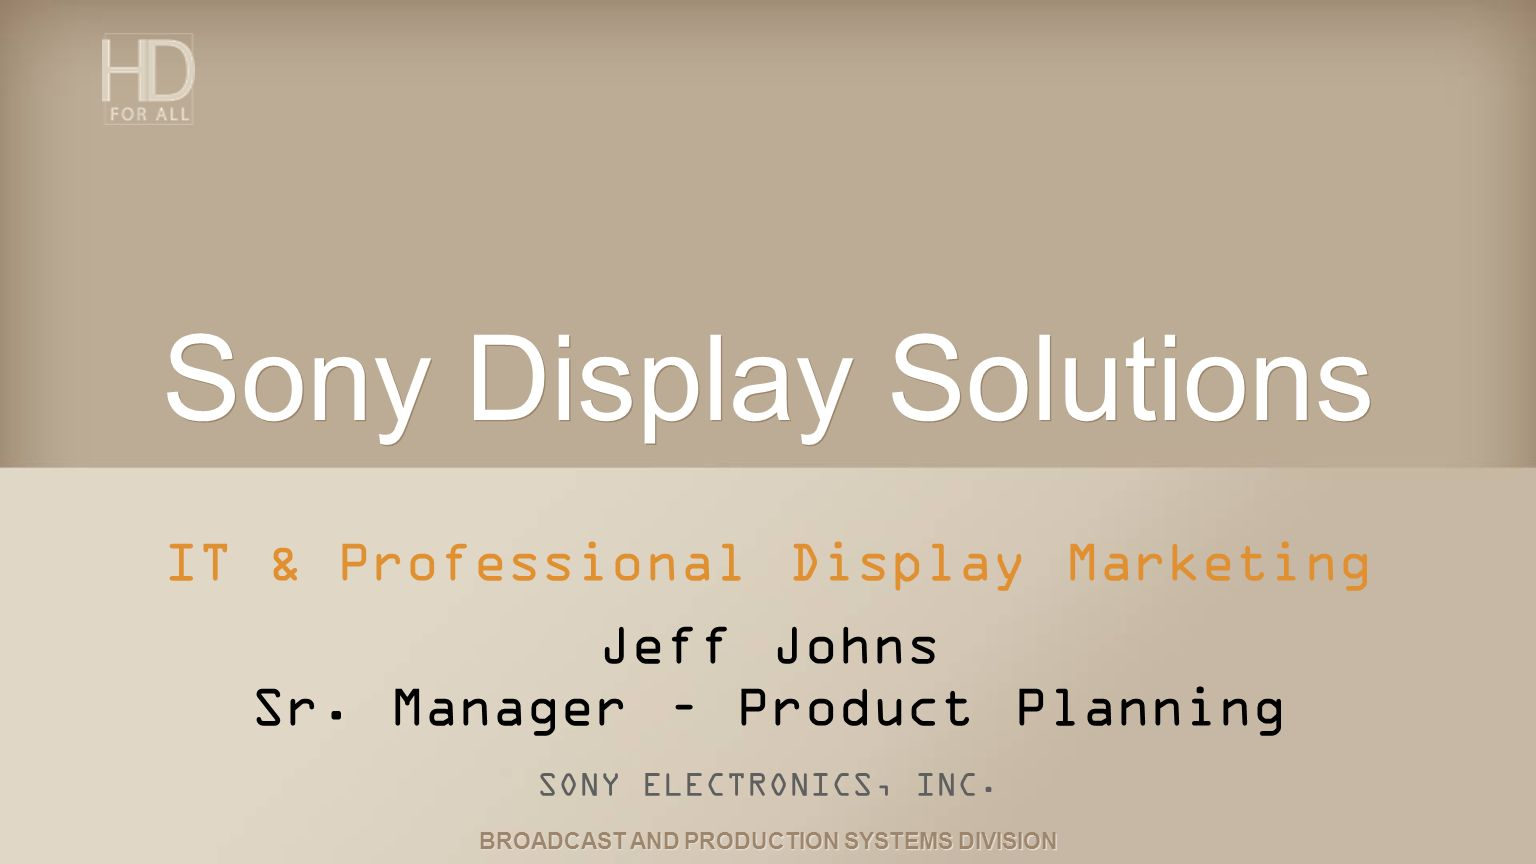 Sony Display Solutions